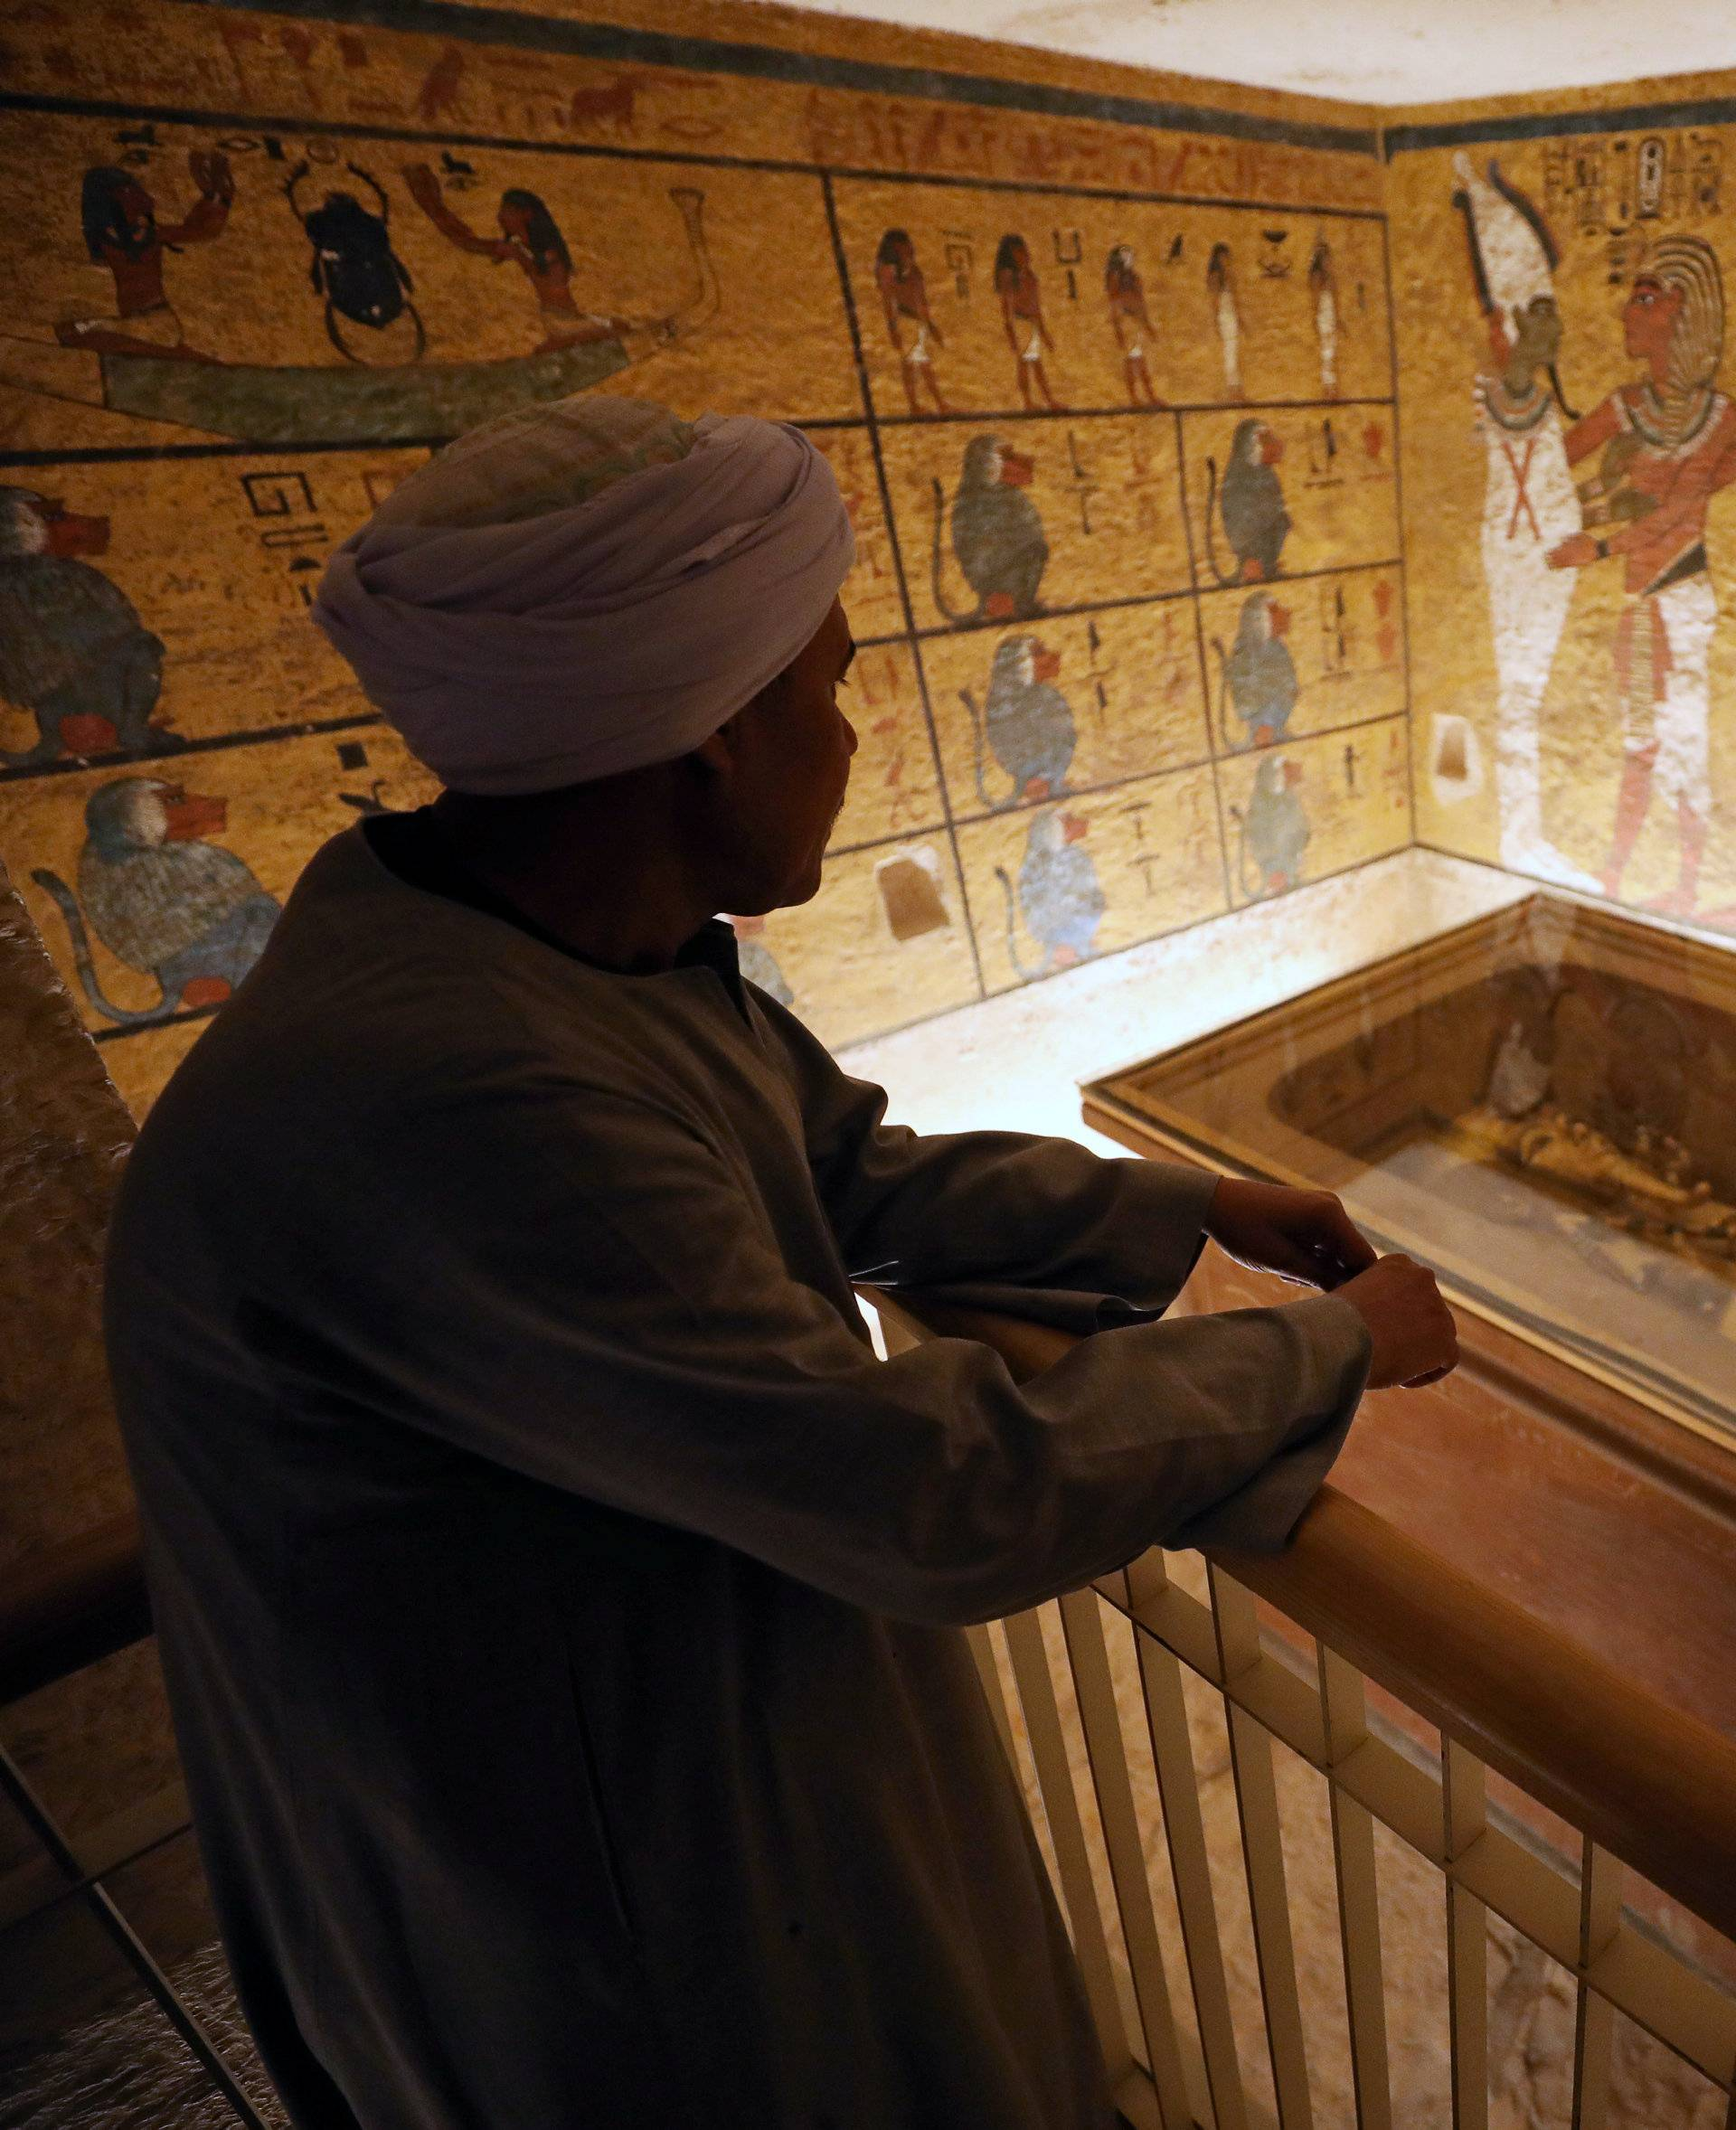 A guard looks at ancient Egyptian drawings and the sarcophagus in the newly renovated tomb wall of boy pharaoh King Tutankhamun in the Valley of the Kings in Luxor